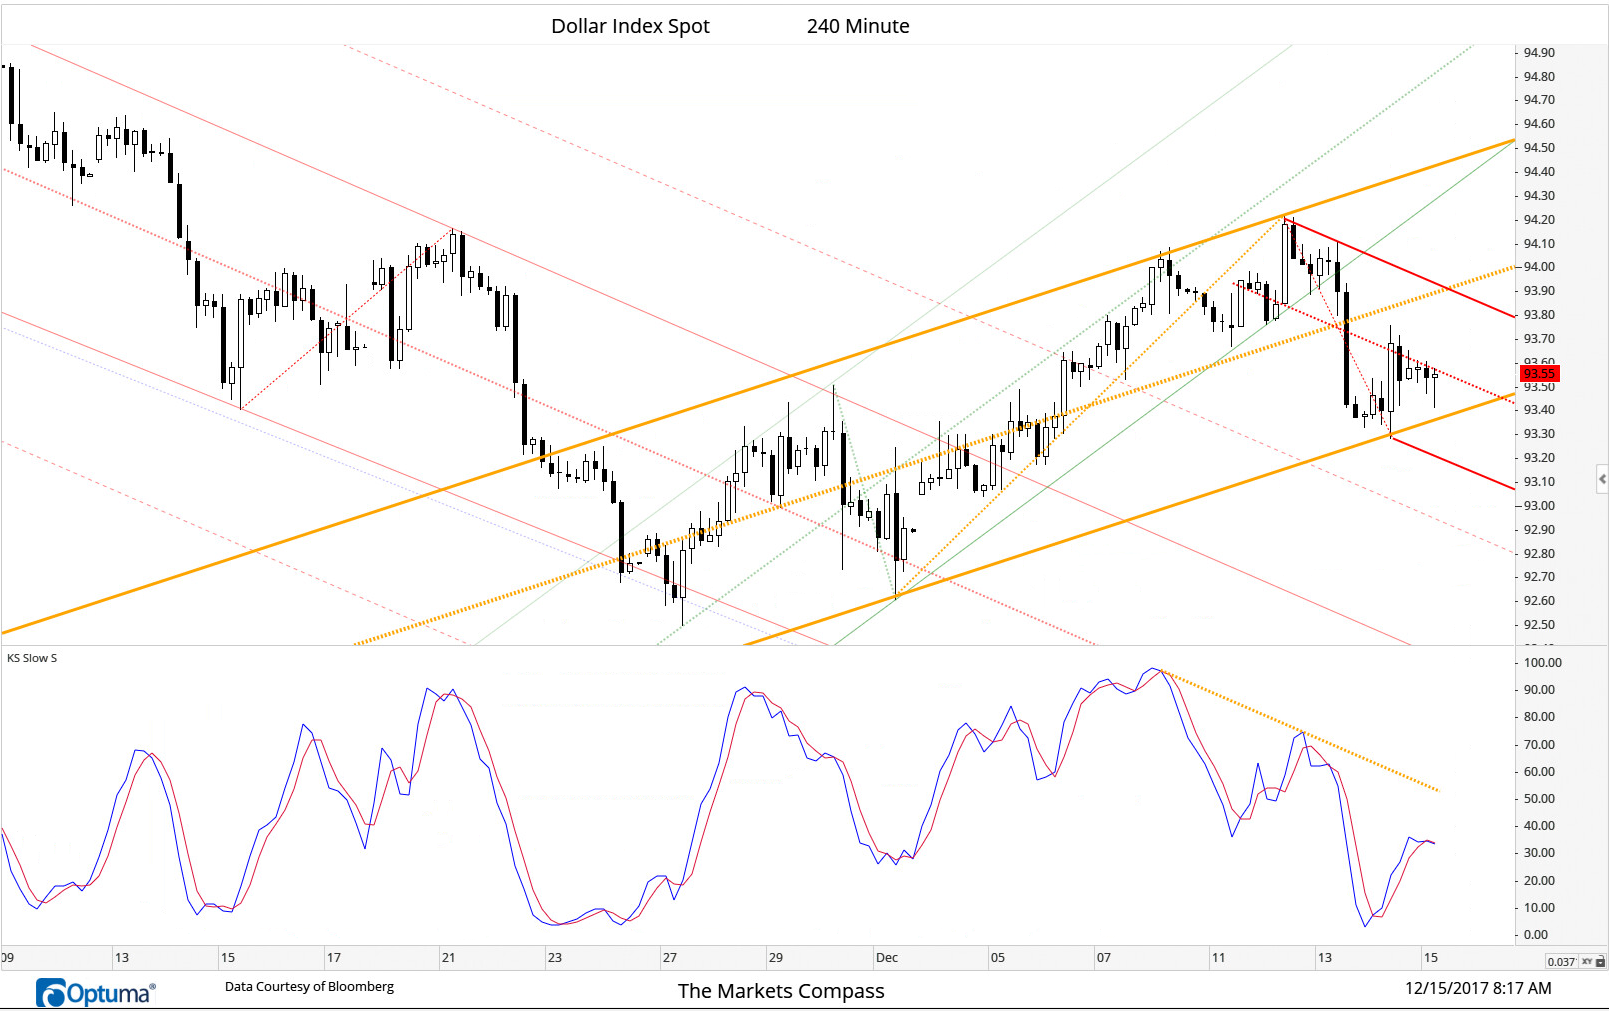 Follow Up...The resumption of the down trend in the DXY appears to be in gear. The acceleration to the downside out of the rising Schiff Modified Pitchfork's Lower Parallel (Green) has led us to draw the new Schiff Adjusted Pitchfork (Orange) and now the short term Standard Pitchfork (Red) where prices have been confined by the Median Line for the past six candles. Note that this shorter term Standard Pitchfork is dropping at the same degree as the previous longer term Stardard Pitchfork (Faint Red). It may be a coincedence but that same angle is matched by the downtrend in the Slow Stochastic. We tend to believe that it is not. A break of Lower Parallel of the Schiff Adjusted Pitchfork (Orange) will confirm the resumption of the longer term downtrend.